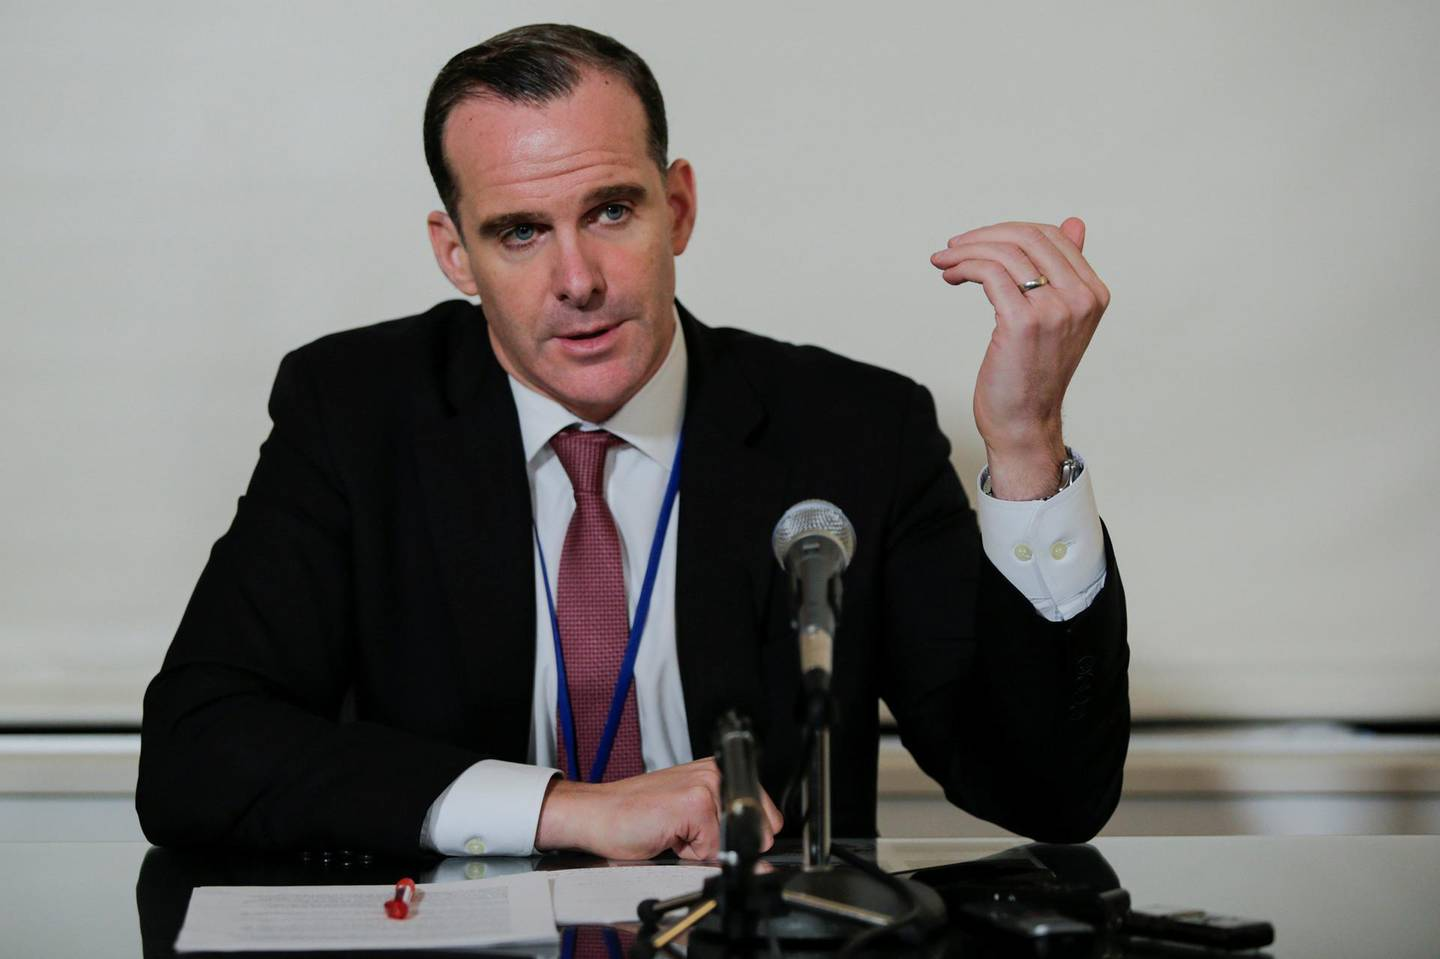 U.S. envoy to the coalition against Islamic State, Brett McGurk, speaks with media during a briefing to Defeat ISIS and an update on the Coalition's efforts during the 72nd United Nations General Assembly in New York, U.S., September 22, 2017. REUTERS/Eduardo Munoz